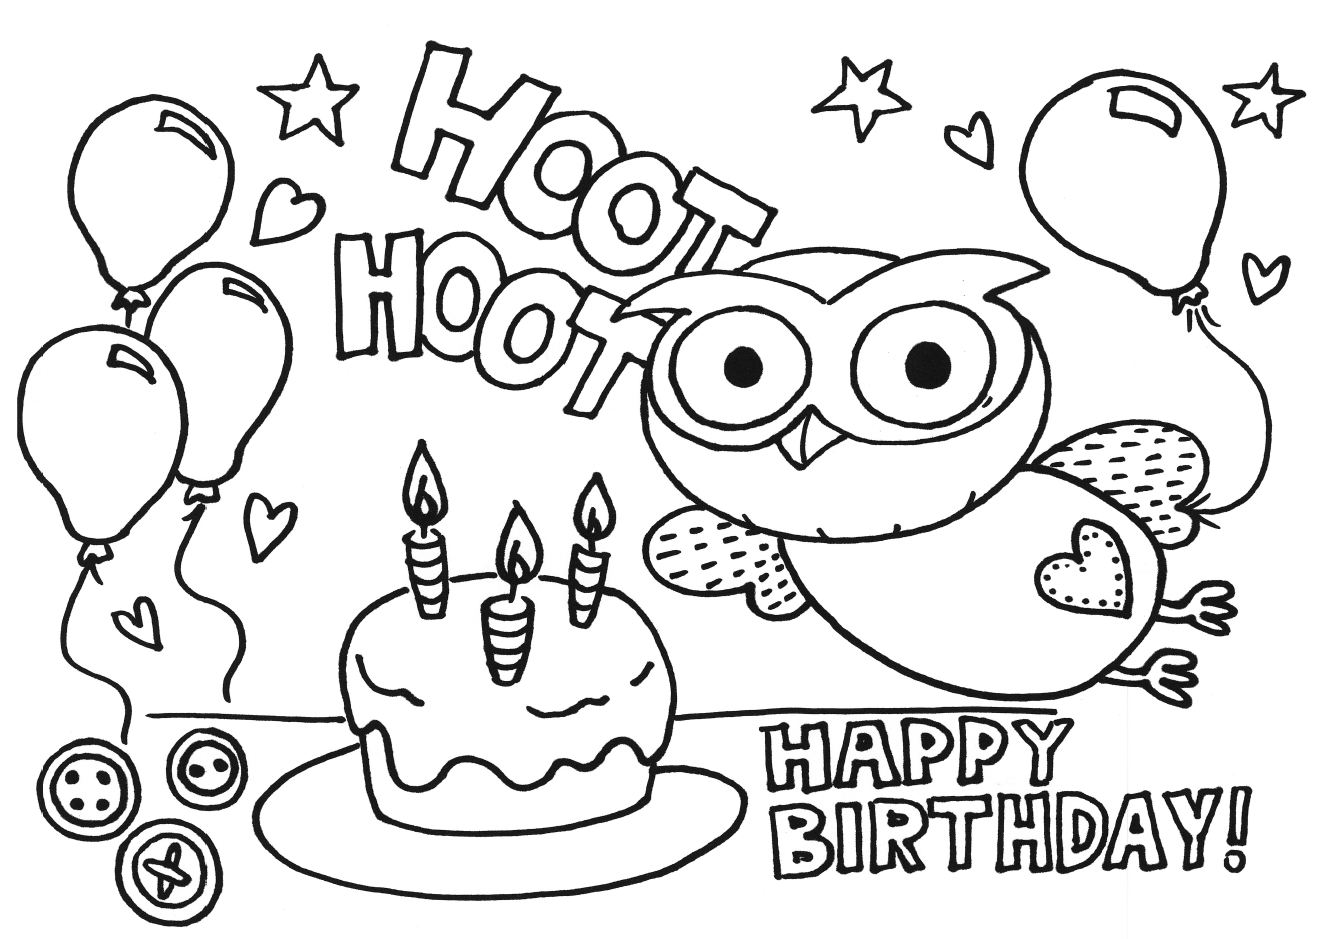 - Coloring Page Birthday Cake Az Coloring Pages. Happy Me. Likewise